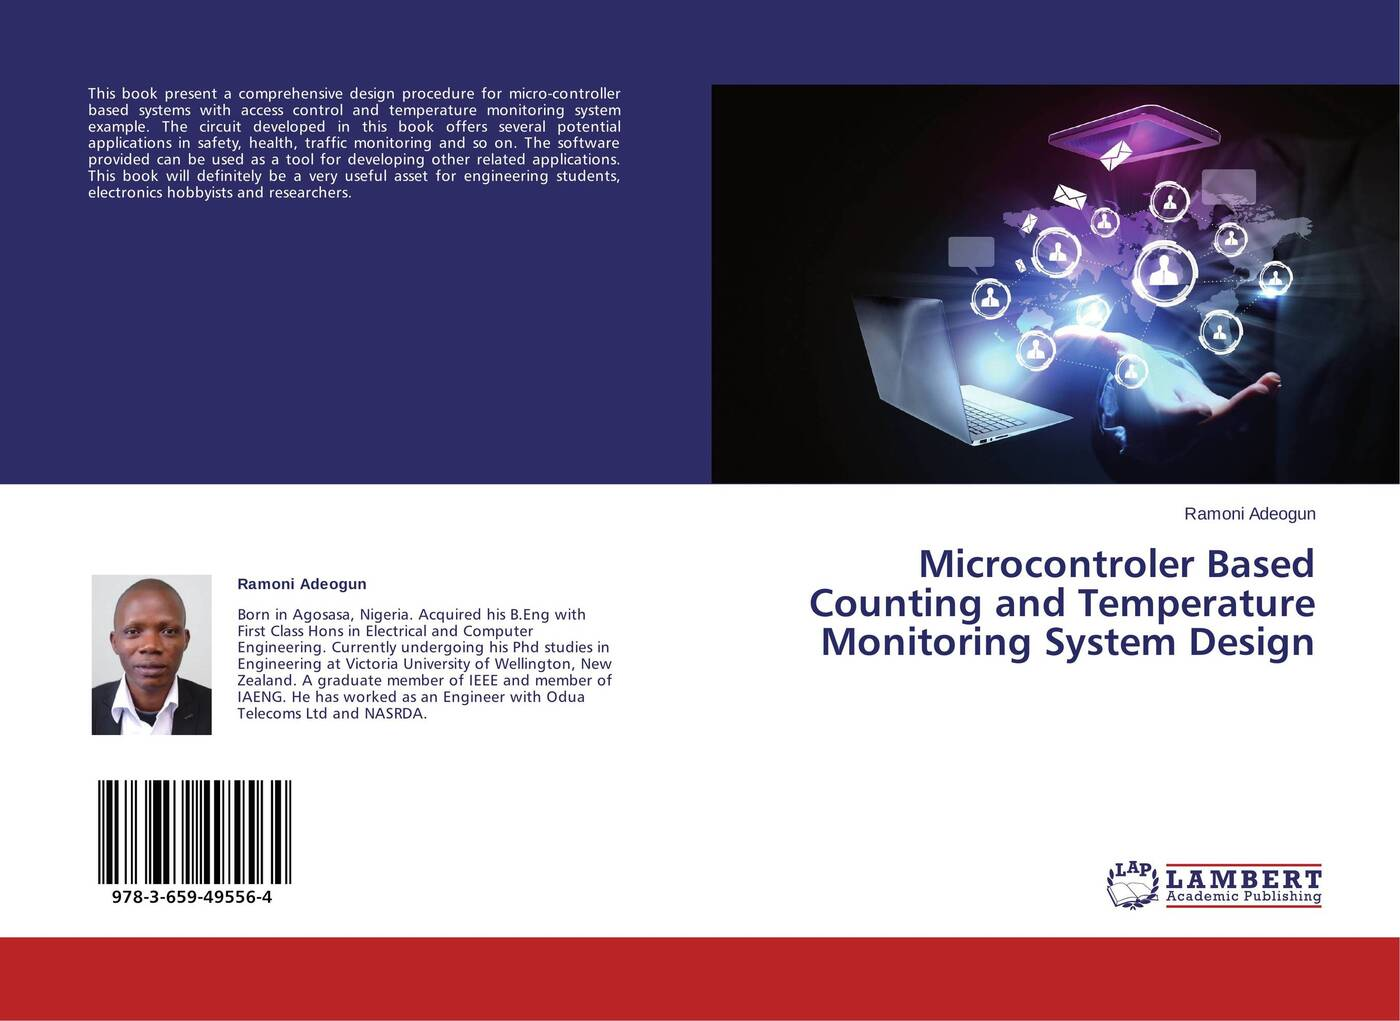 Ramoni Adeogun Microcontroler Based Counting and Temperature Monitoring System Design xiao gaozhi photonic sensing principles and applications for safety and security monitoring